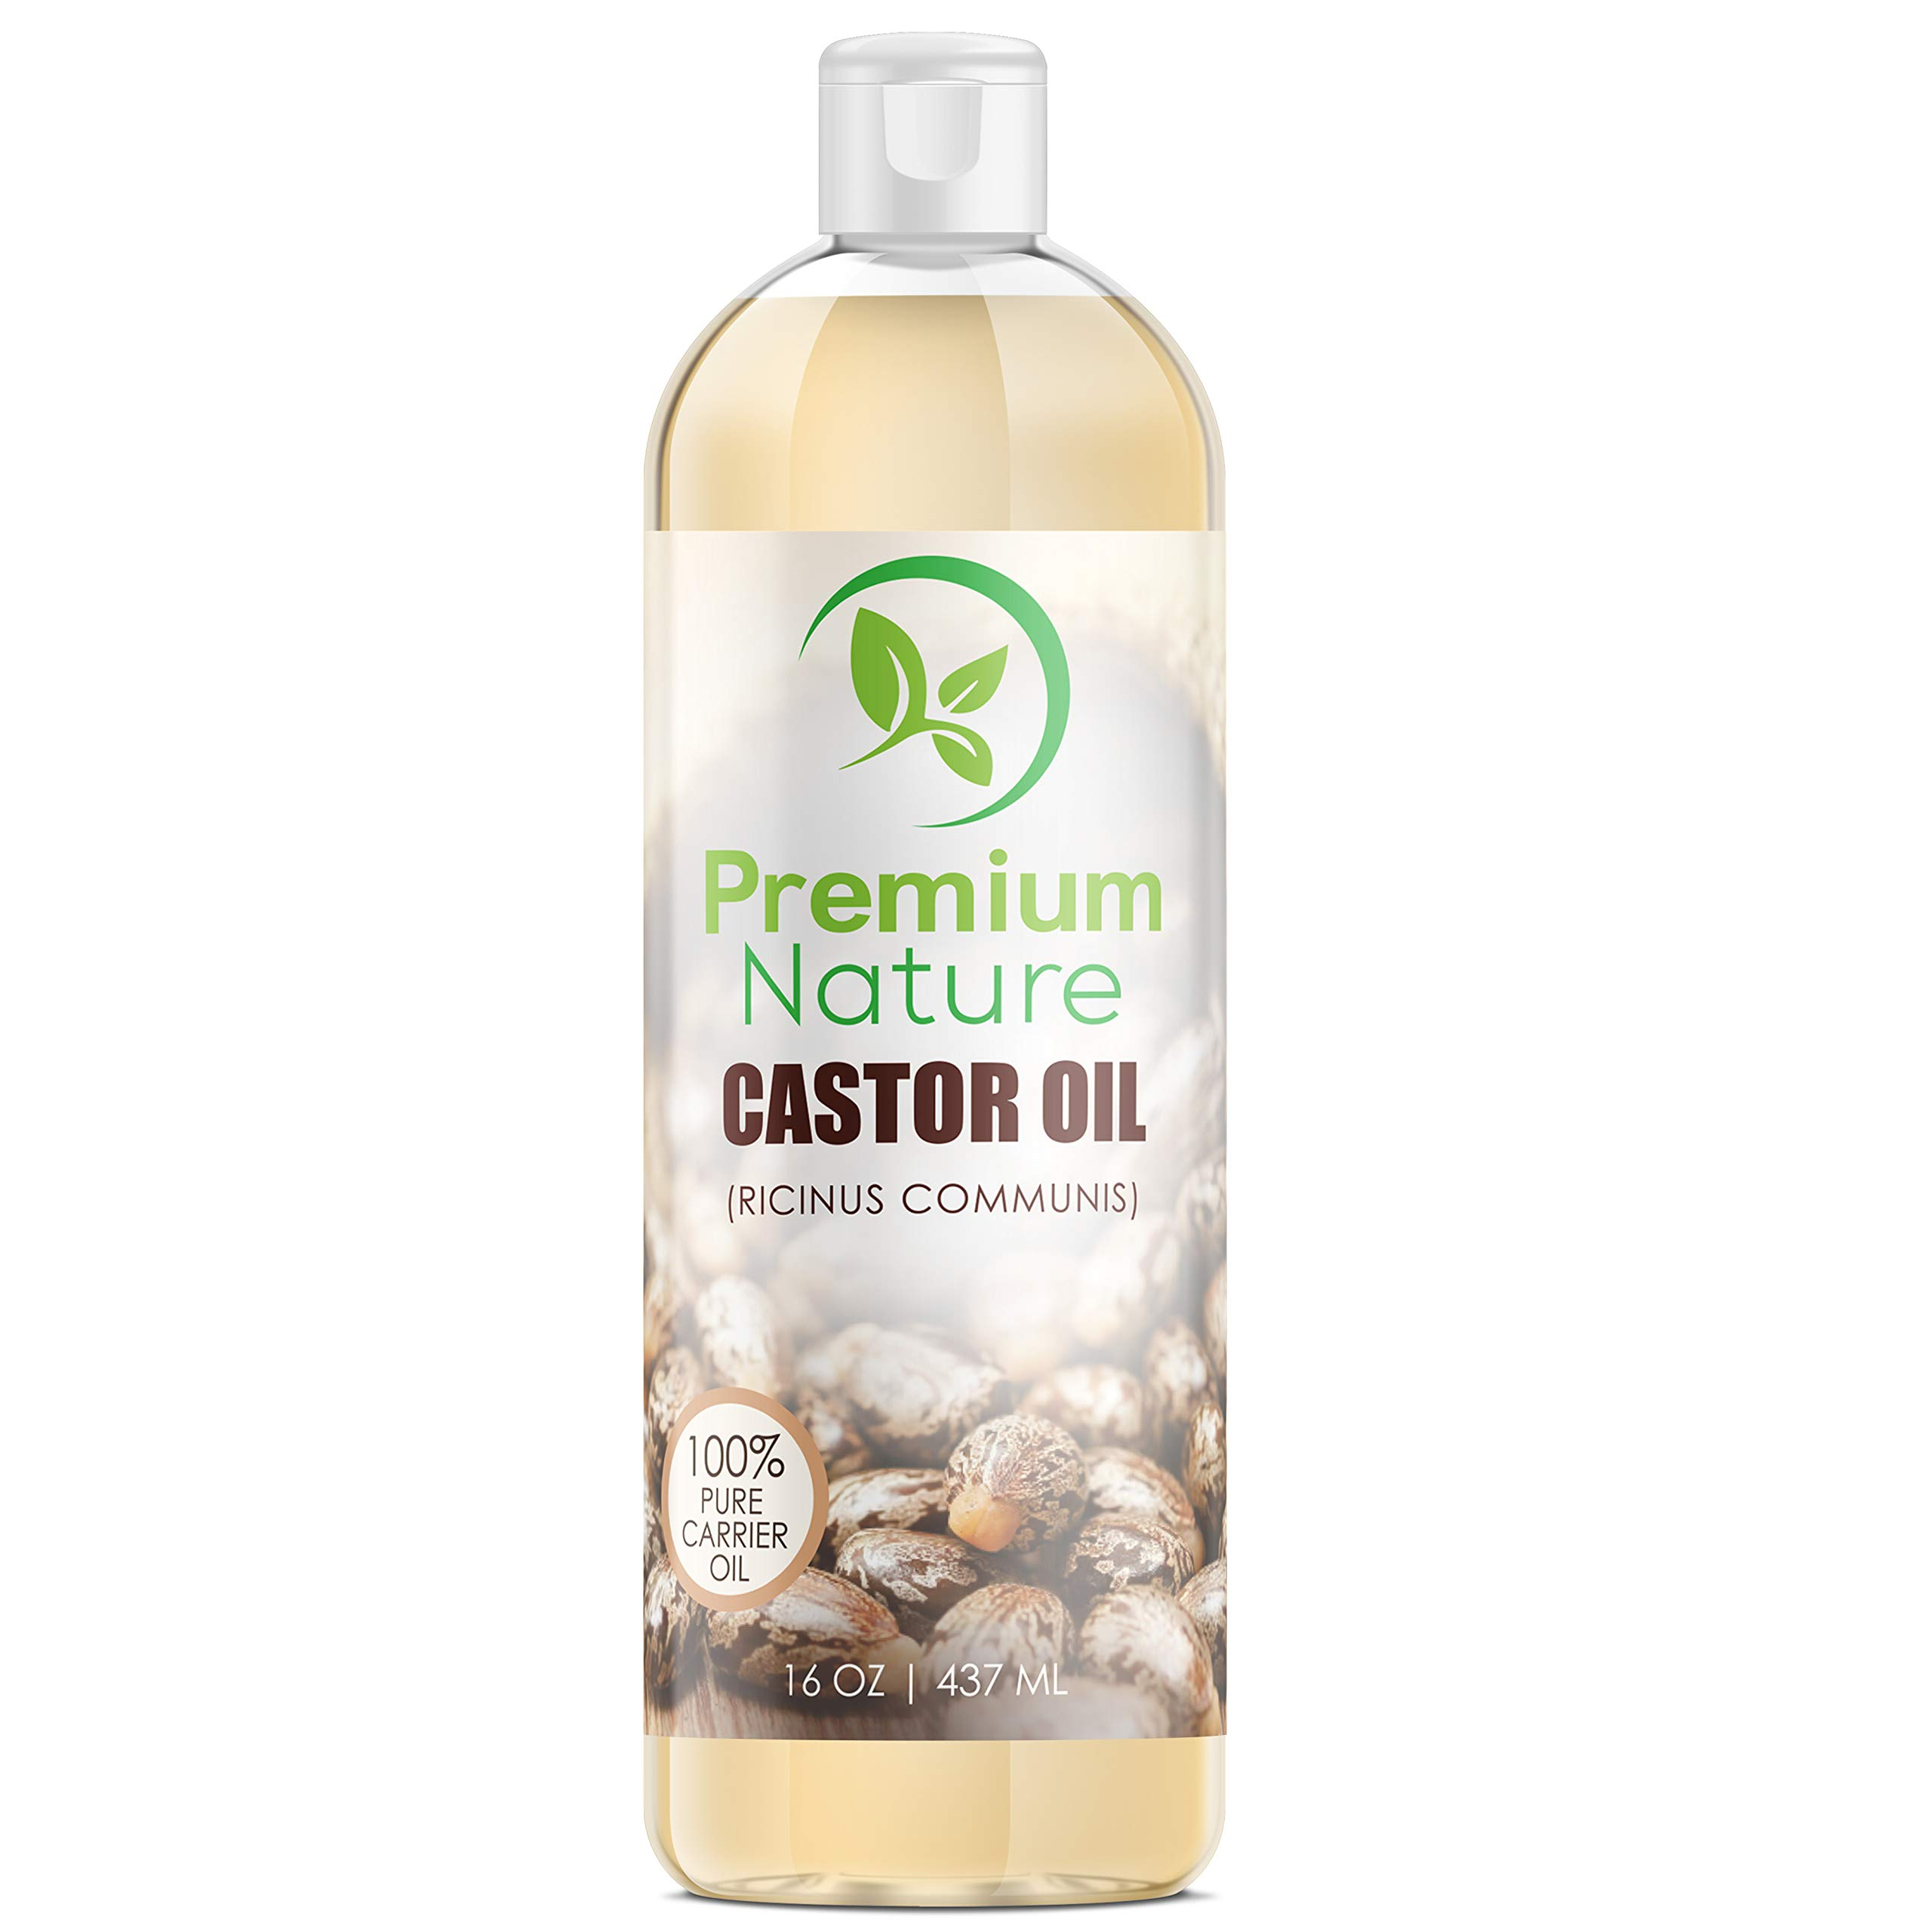 Castor Oil Pure Carrier Oil - Cold Pressed Castrol Oil for Essential Oils Mixing Natural Skin Moisturizer Body & Face Oil, Eyelashes Eyebrows Lash & Hair Growth Serum, Heals Inflamed Skin 16 oz product image